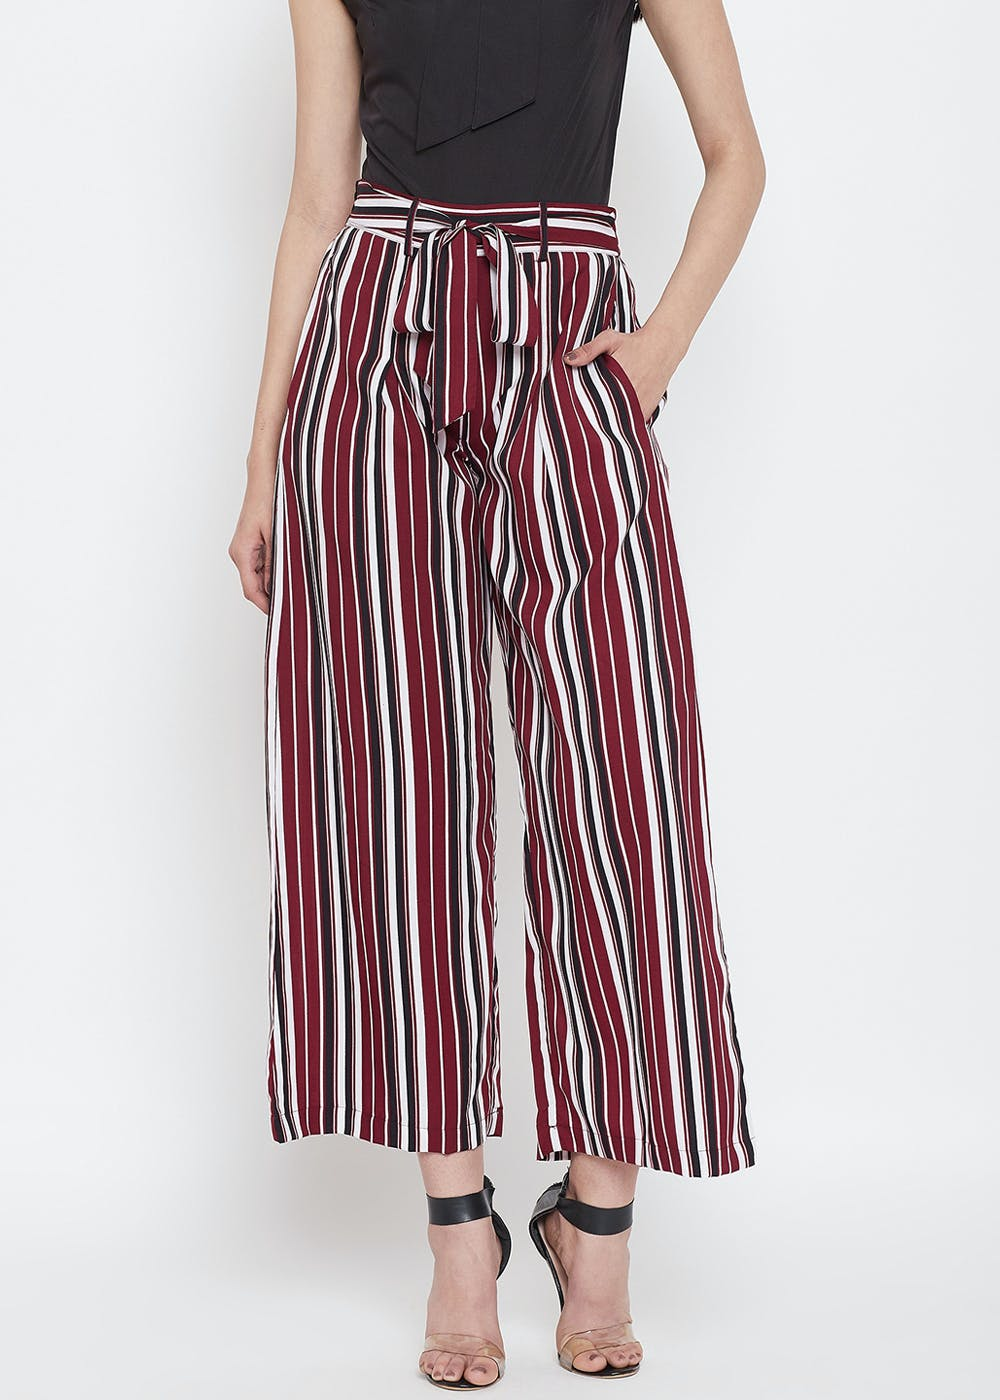 Waist Tie Detail Red & Black Striped Flared Trousers